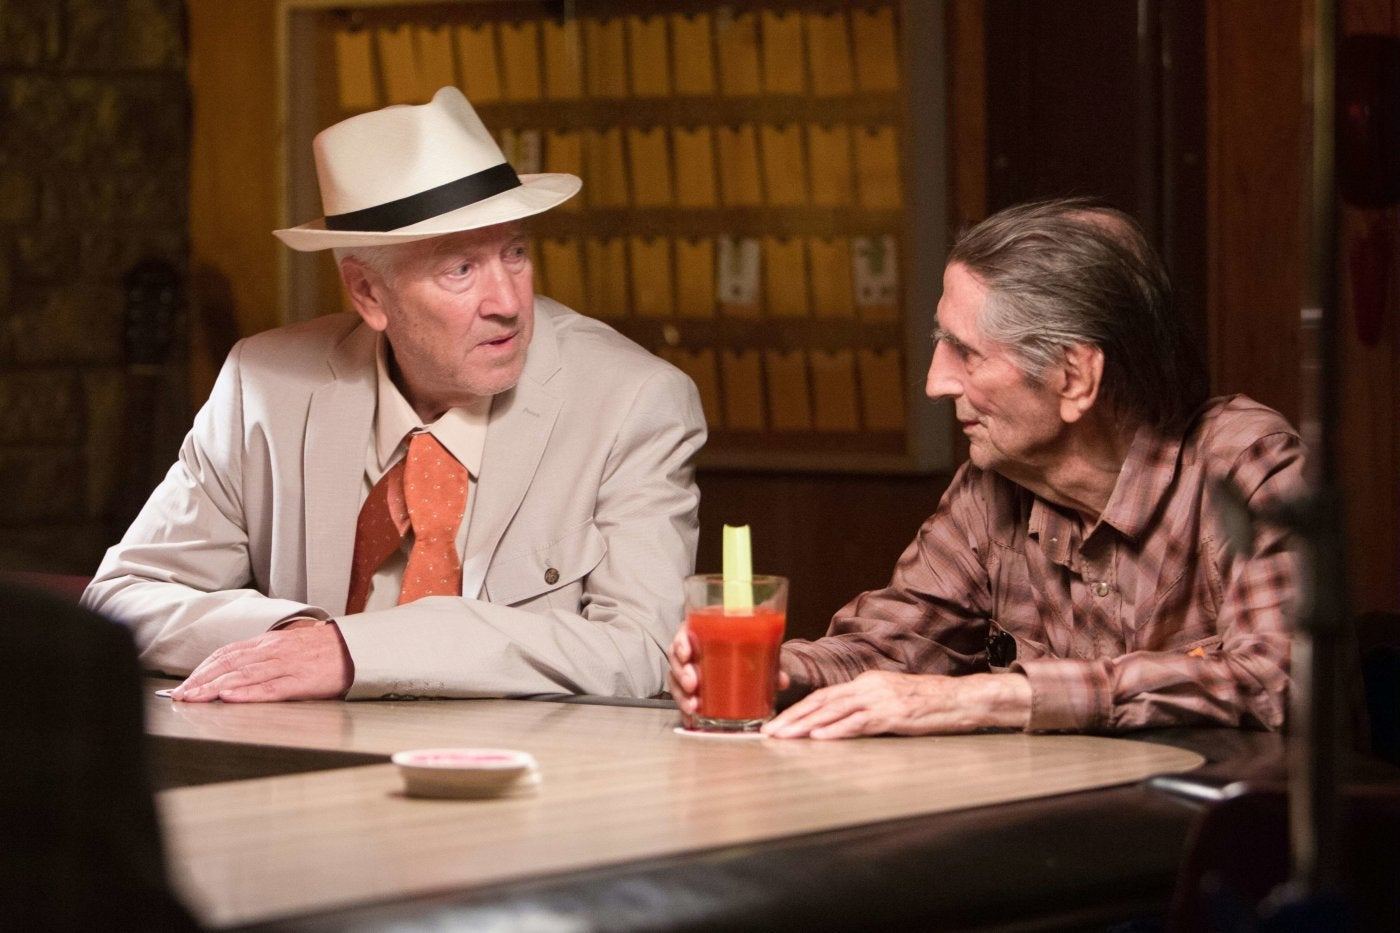 A scene from the movie Lucky, with Harry Sean Stanton  and David Lynch